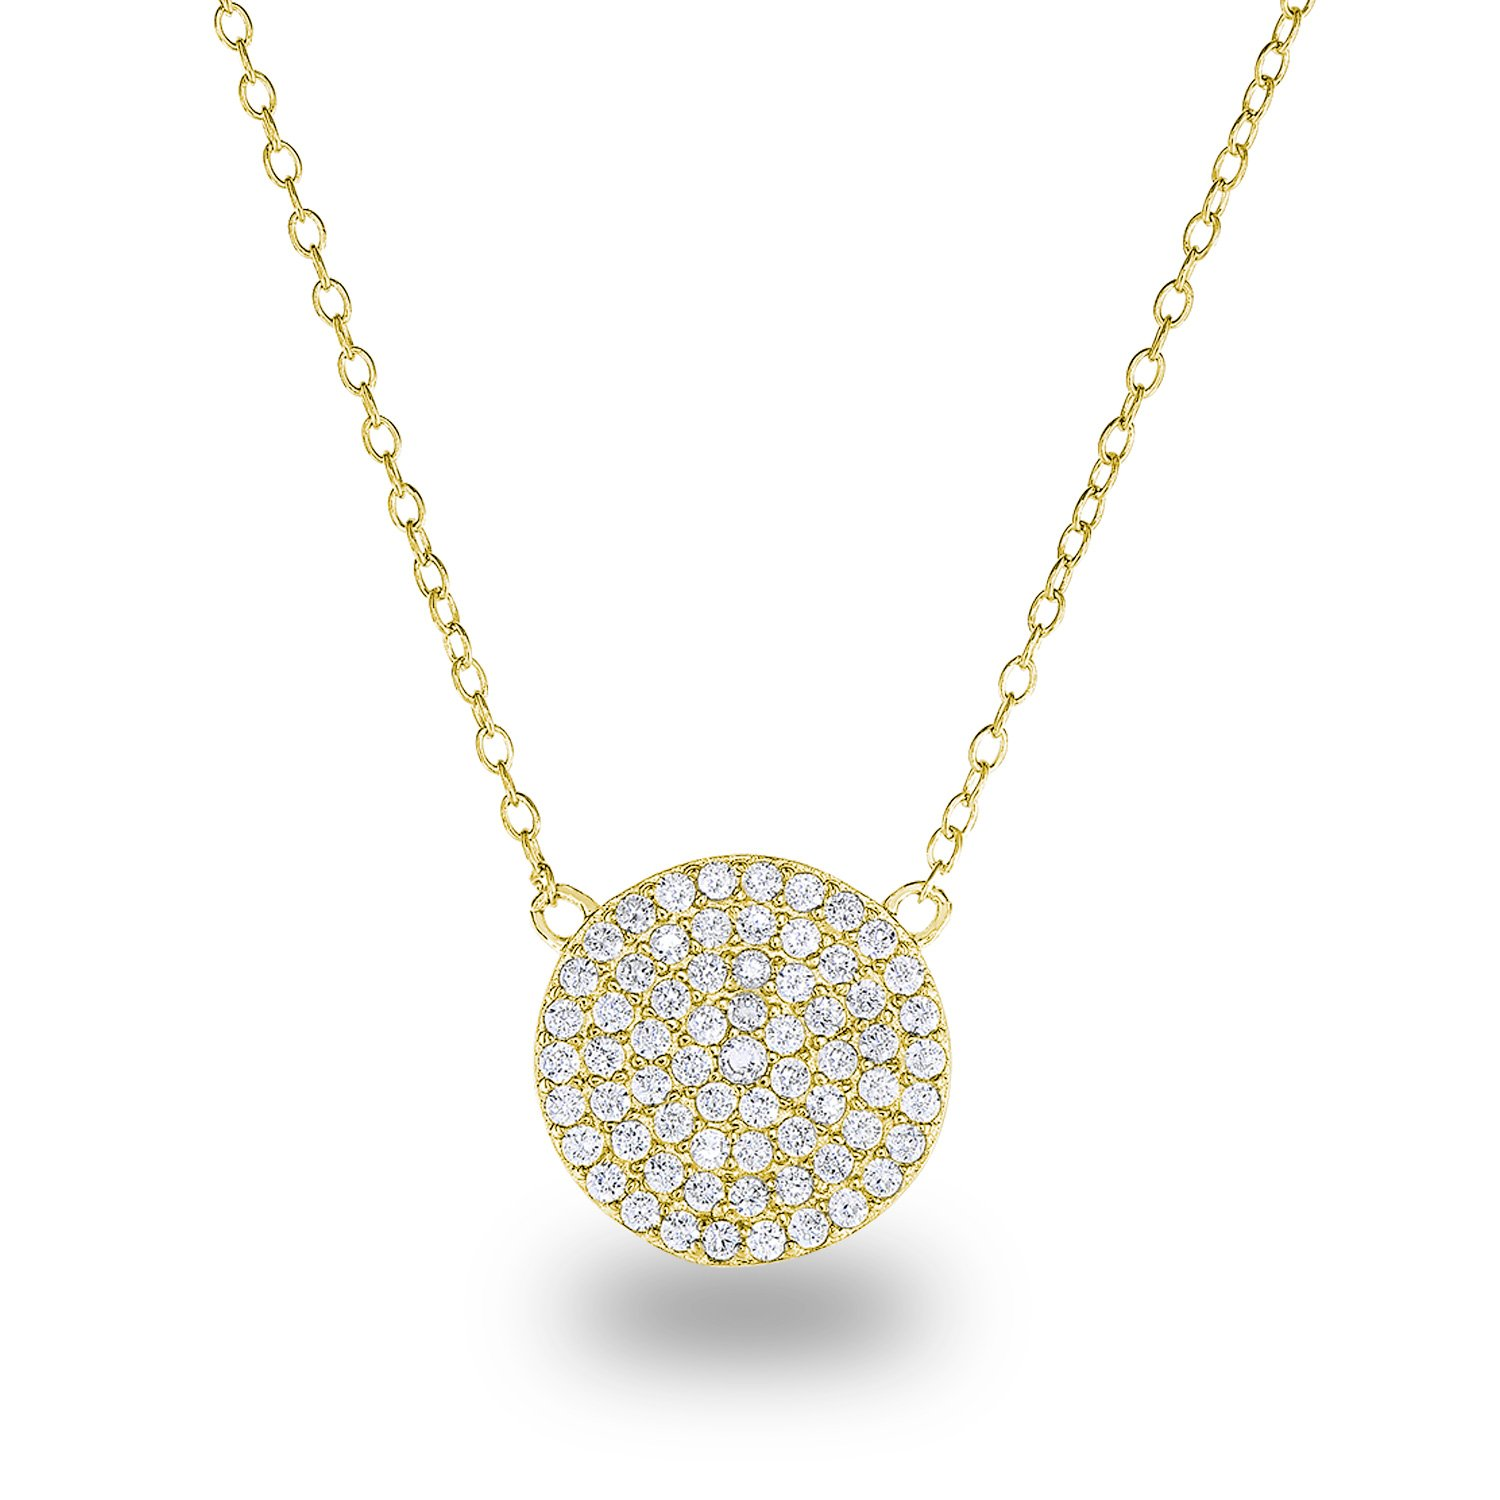 14k Yellow Gold Plated Sterling Silver Cubic Zirconia Pave Disc Circle Chain Necklace,18'' Diameter:12mm